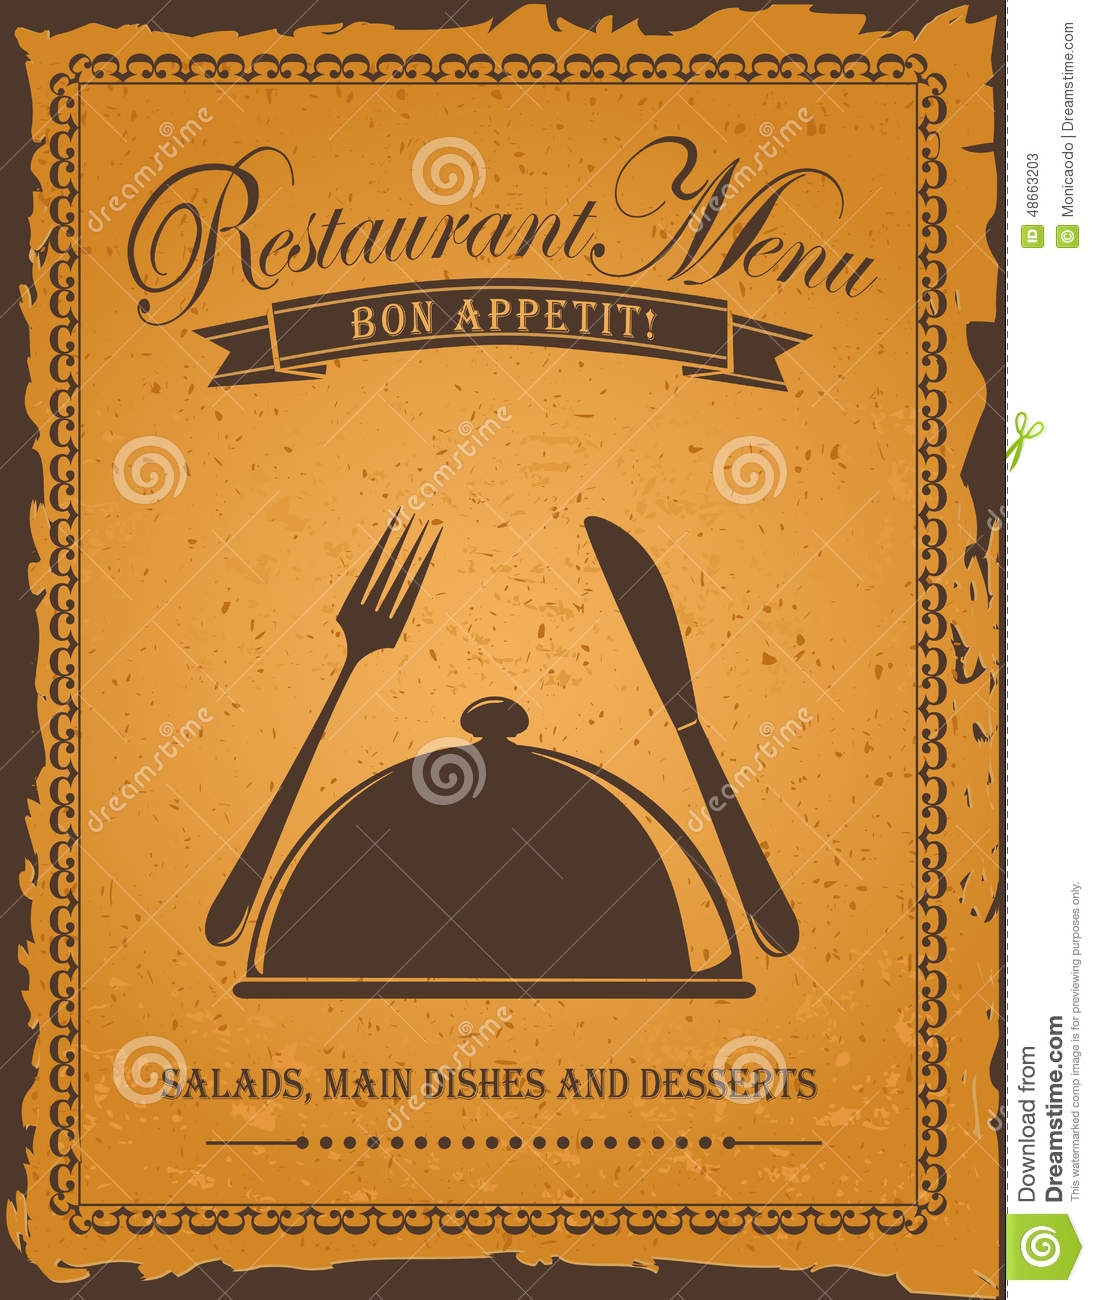 Old Book Cover Posters : Vintage restaurant menu stock vector illustration of